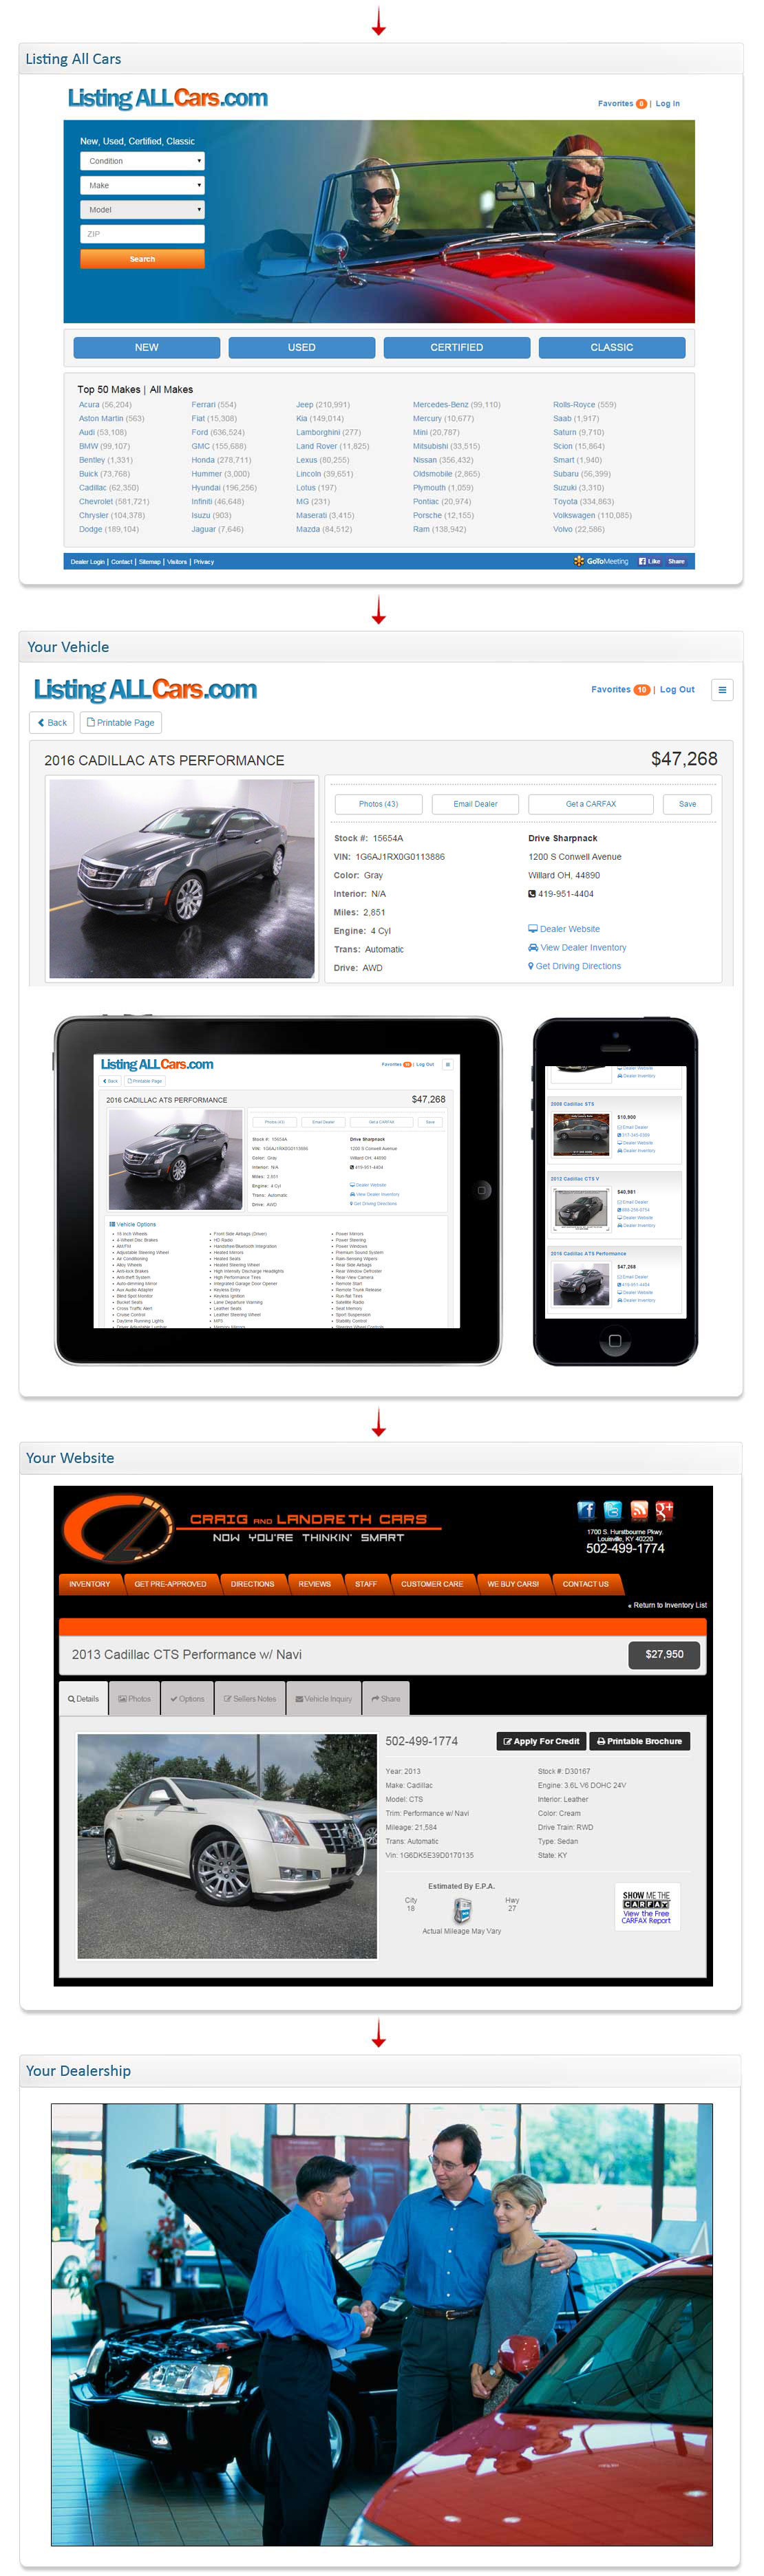 Listing All Cars - Dealer Car Search